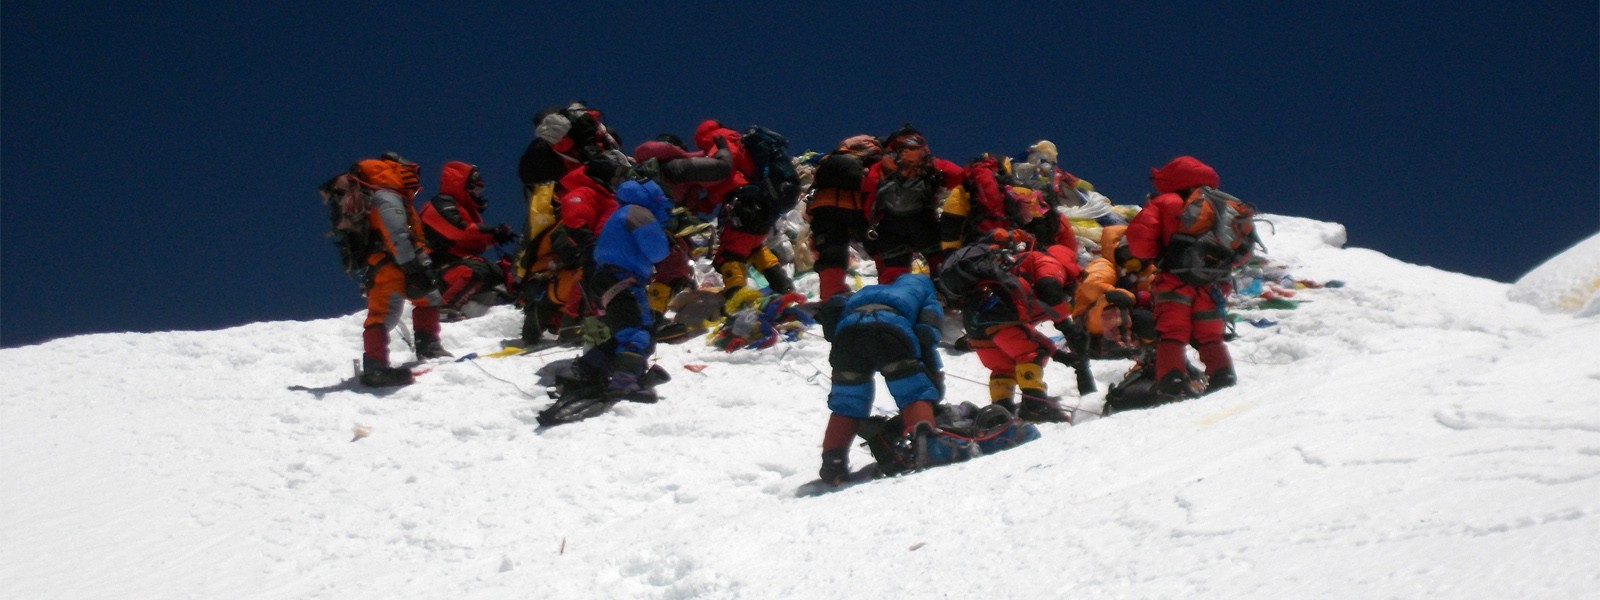 Mount Everest South Col Summit Nepal side